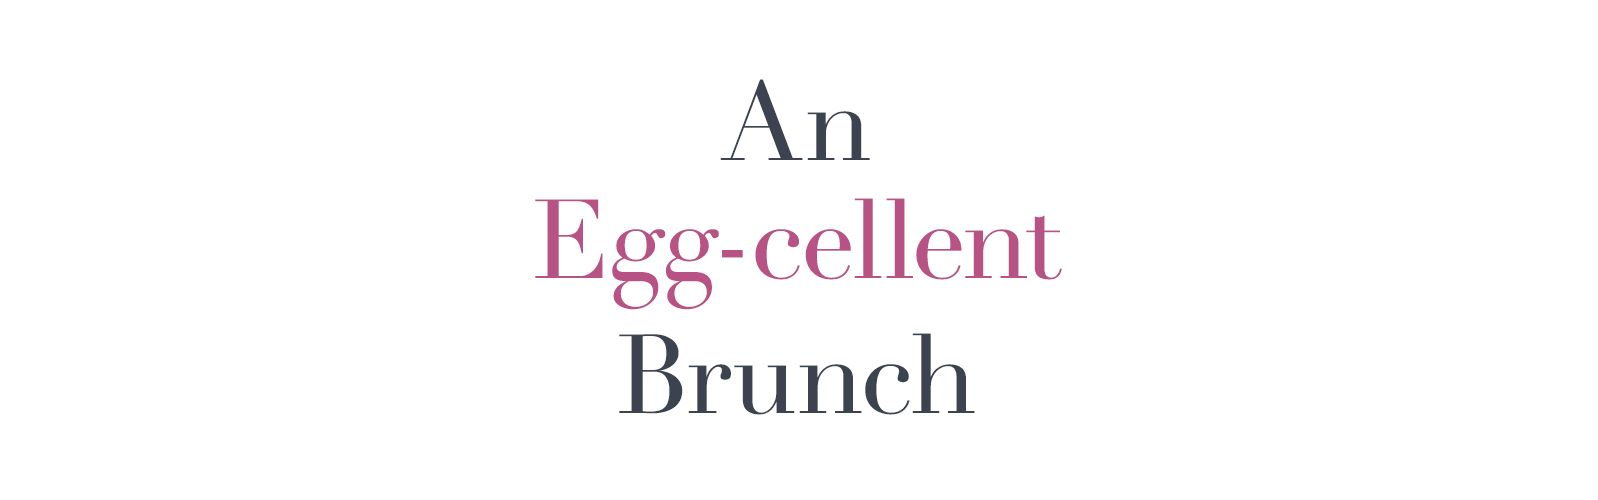 An Egg-cellent Brunch